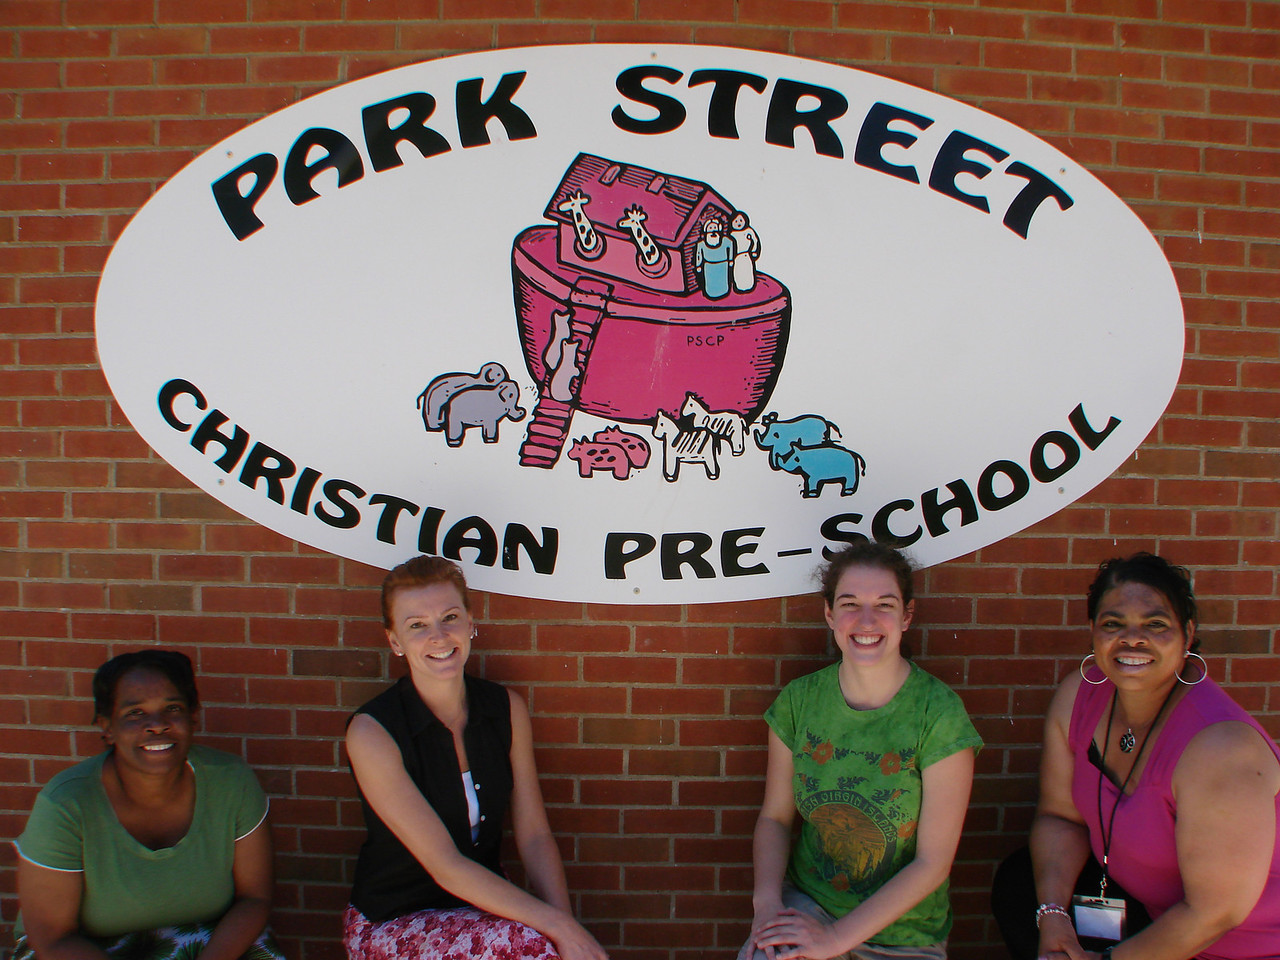 Park Street Christian Preschool Staff, Peggy Turner, Teacher, Angie Taylor, Director, Amy Hastings, Afternoon Assistant, Carolyn Walker, Aassitant Director and Teacher (not pictured Cheryl Strother, Teacher)